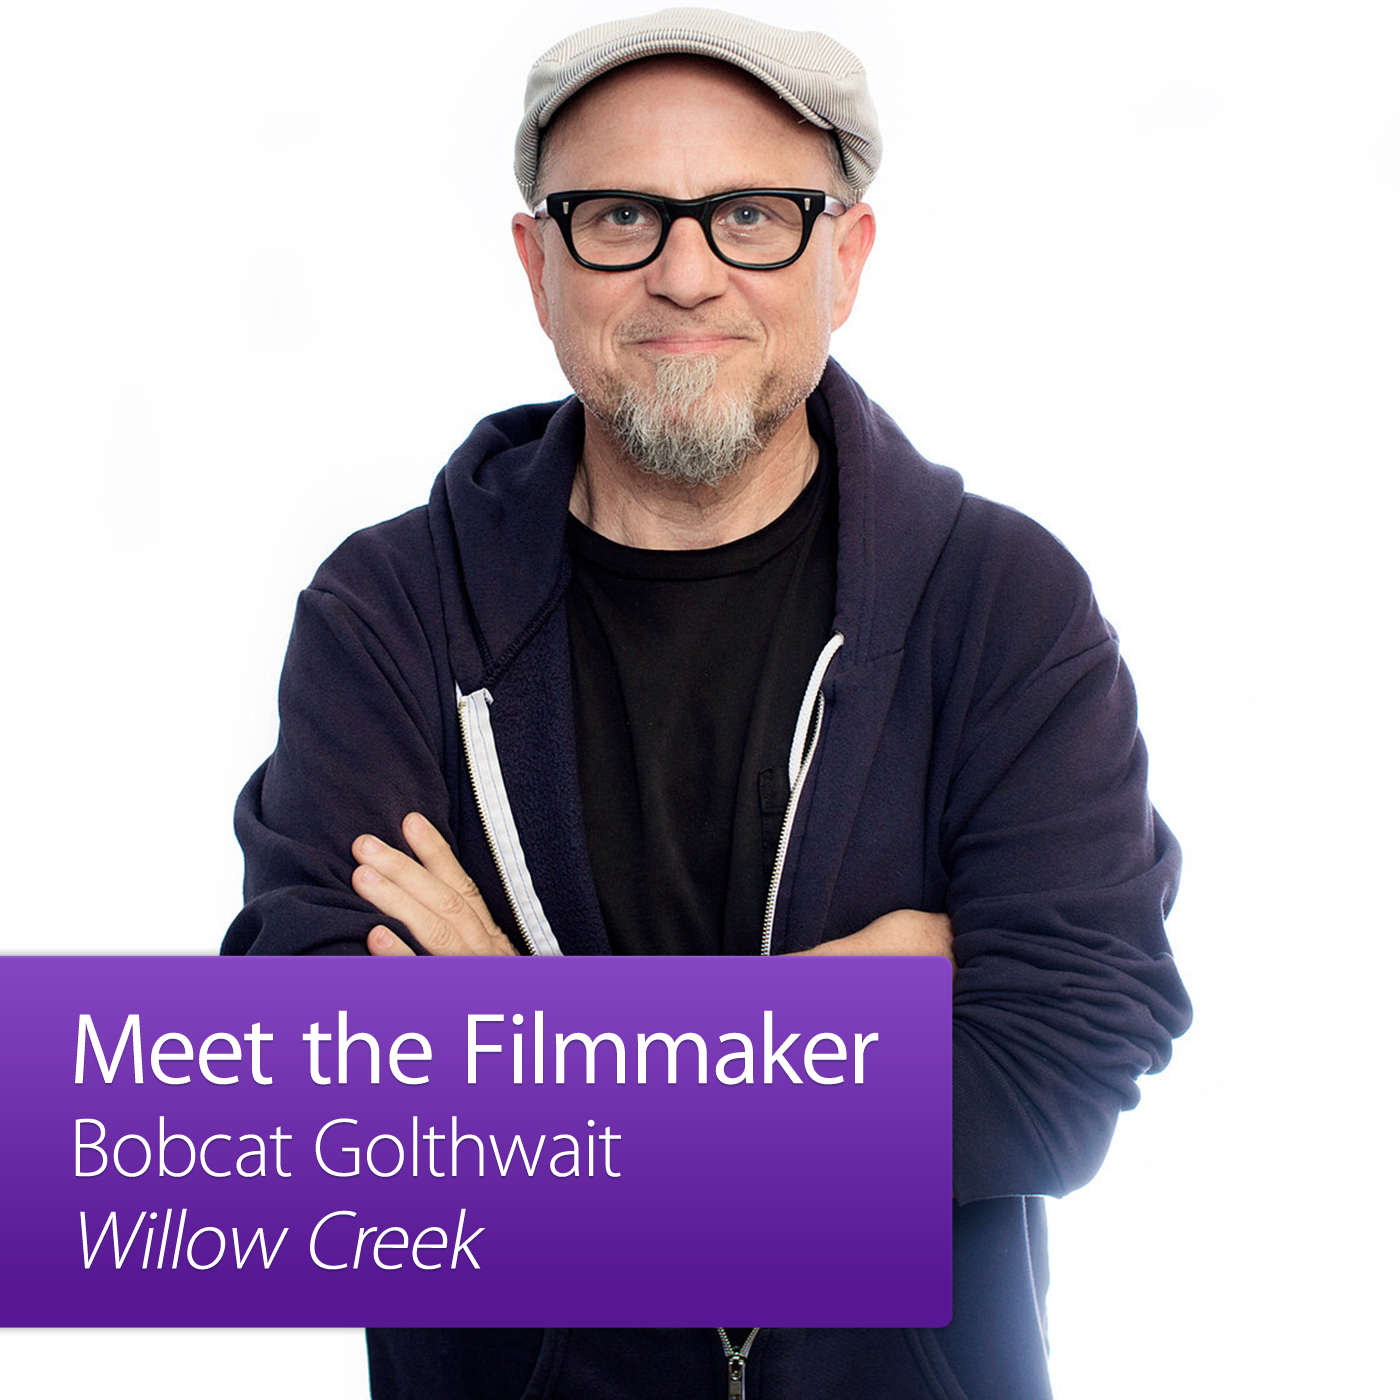 Bobcat Goldthwait: Meet the Filmmaker